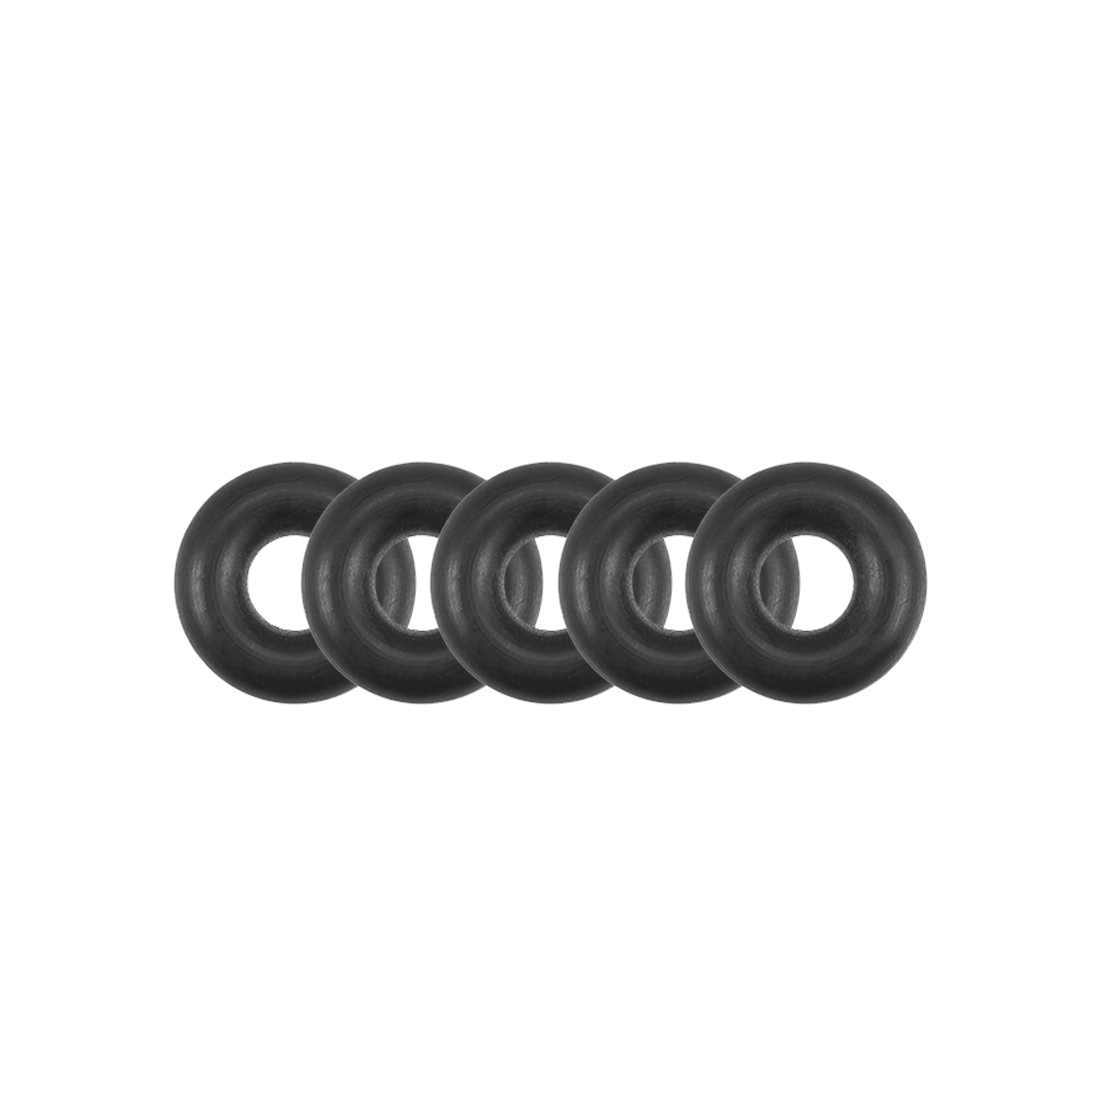 O-Rings Nitrile Rubber 2.24mm x 5.84mm x 1.8mm Round Seal Gasket 5 Pcs